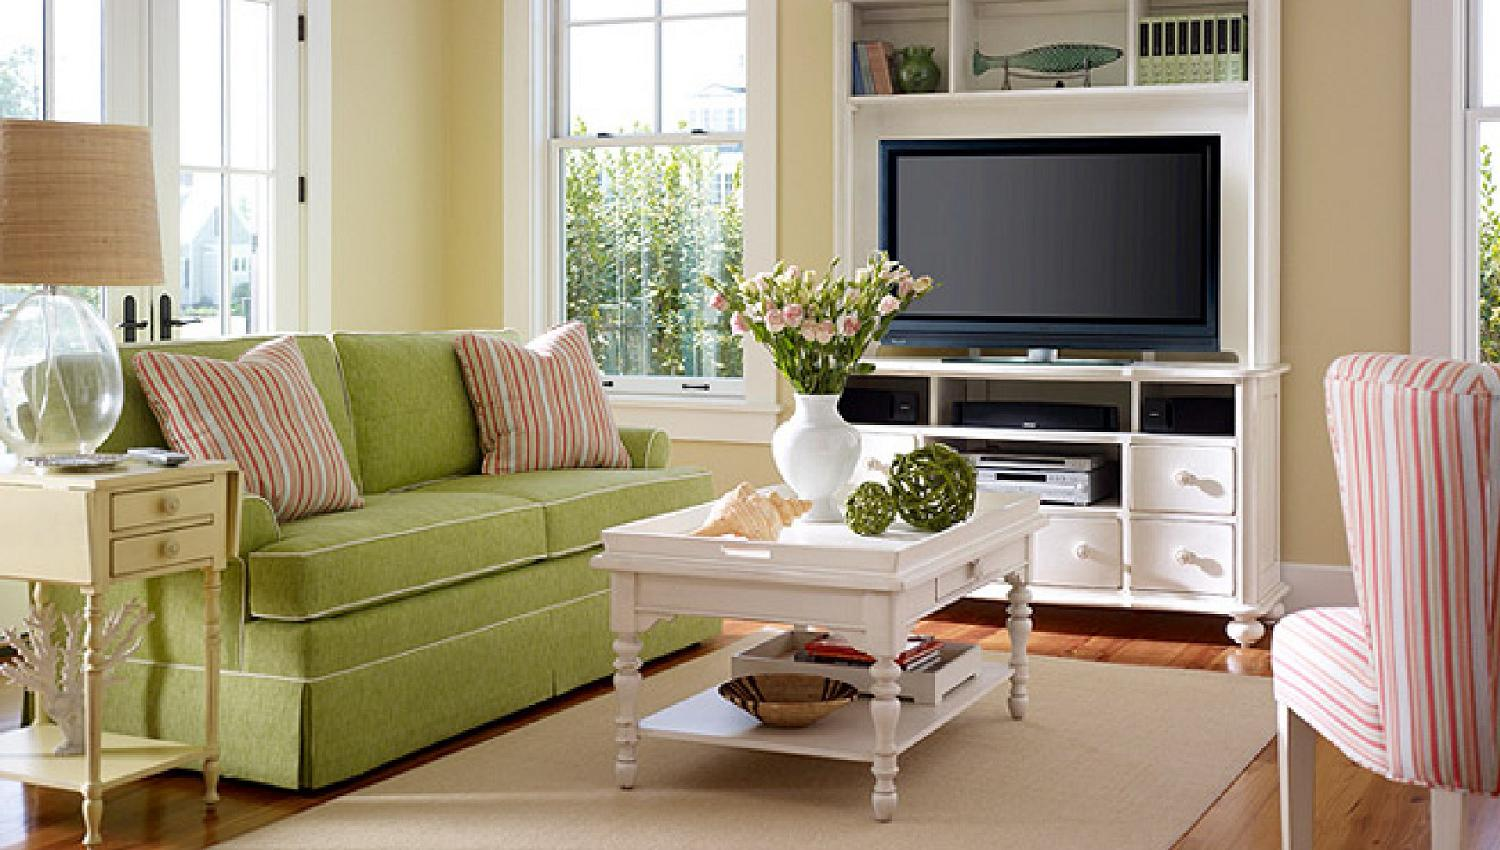 Tips For Choosing Living Room Furniture | HomeAdvisor